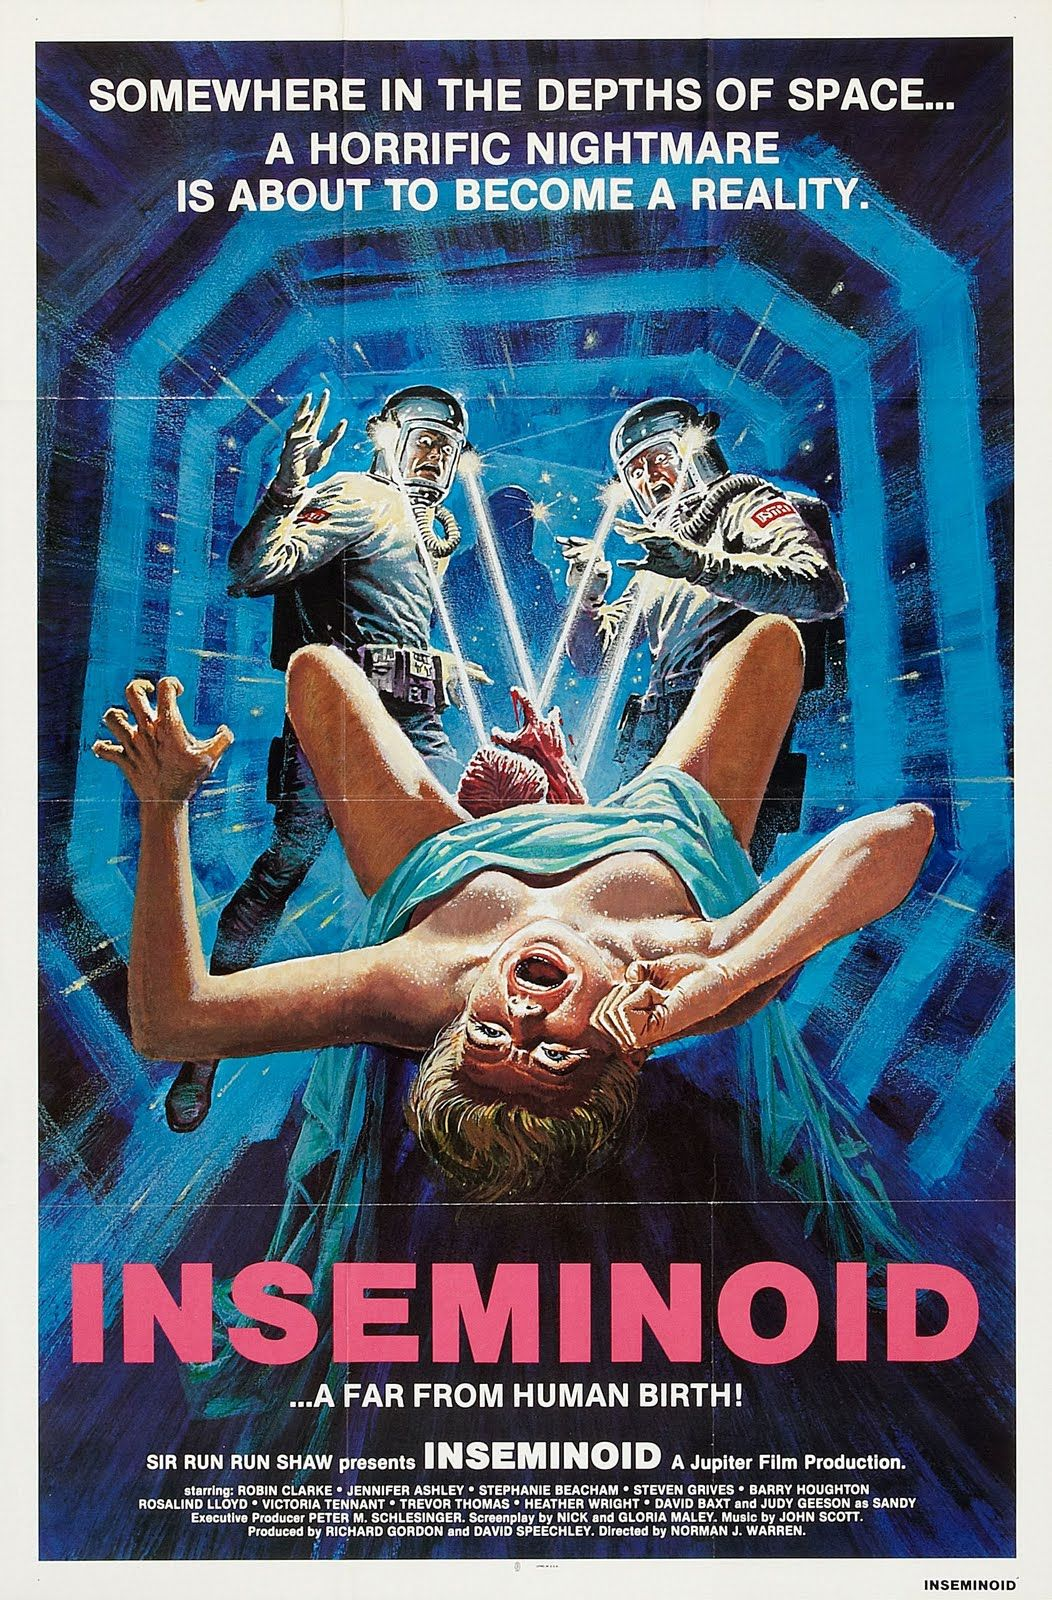 B-Movie Posters for Classic Films | Aesthetics, Sci fi and Search